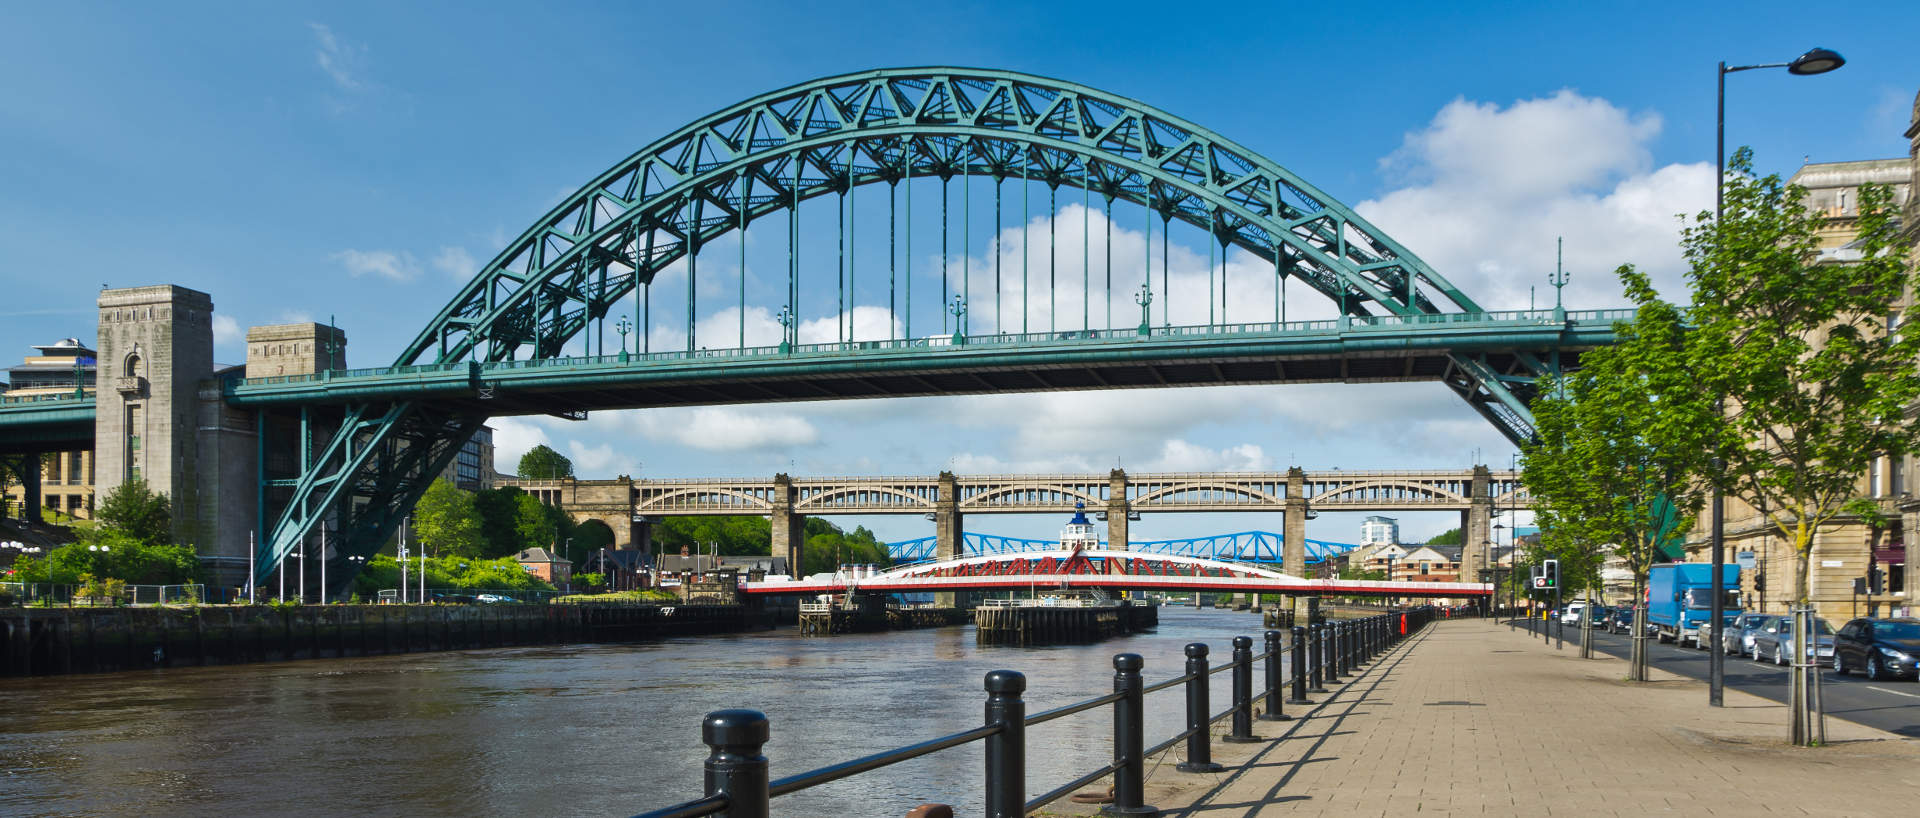 Tyne Bridge near PREMIER SUITES Newcastle